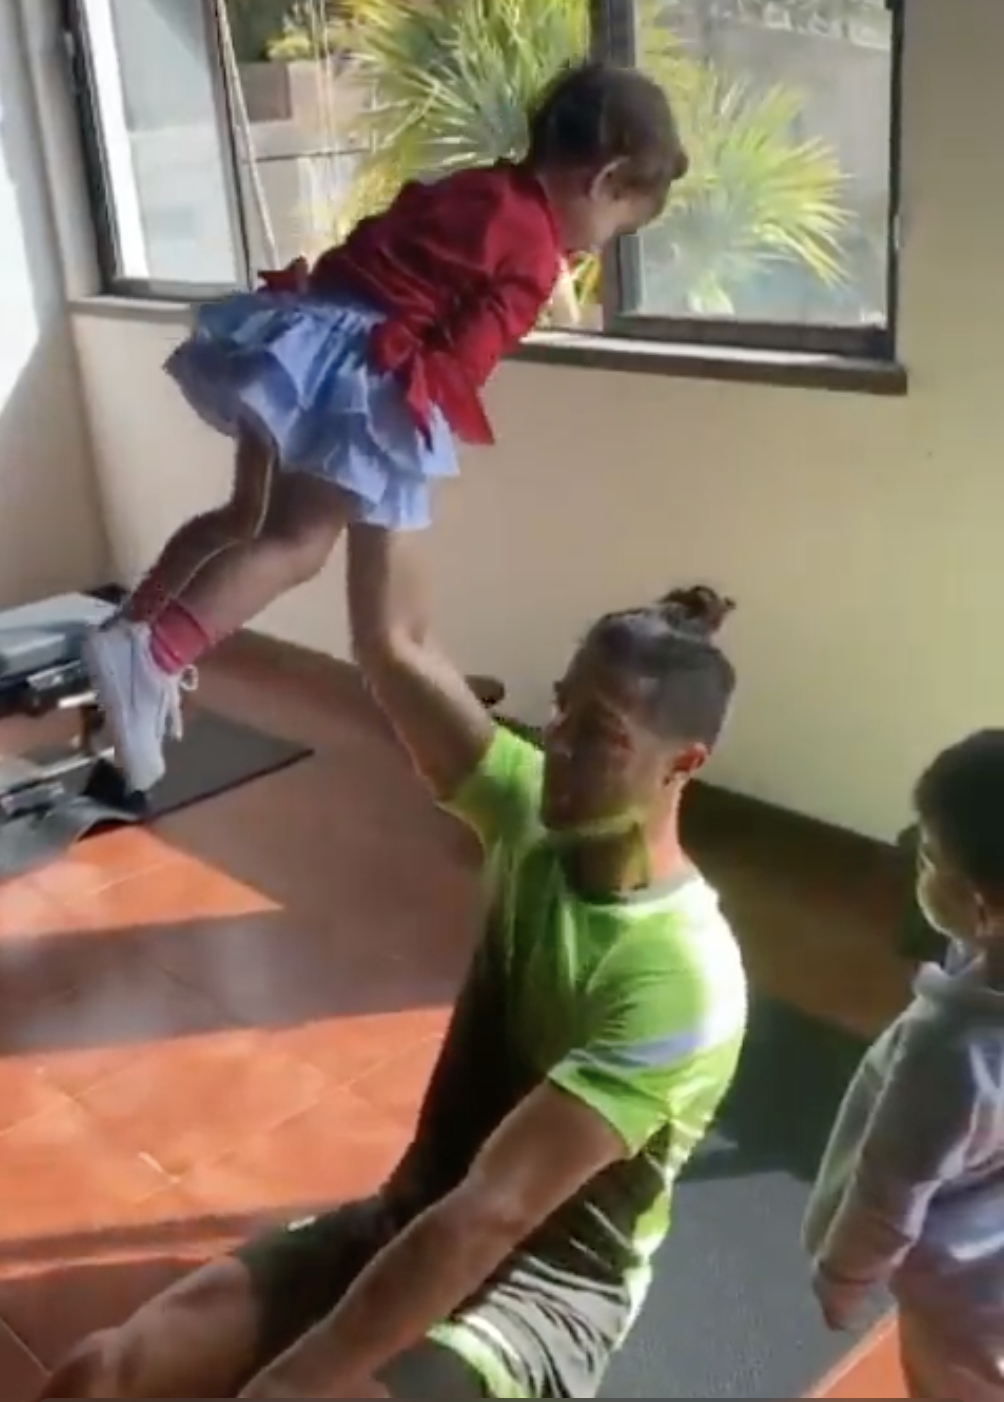 Watch Cristiano Ronaldo Workout Video Features Juve Star Lifting His Children